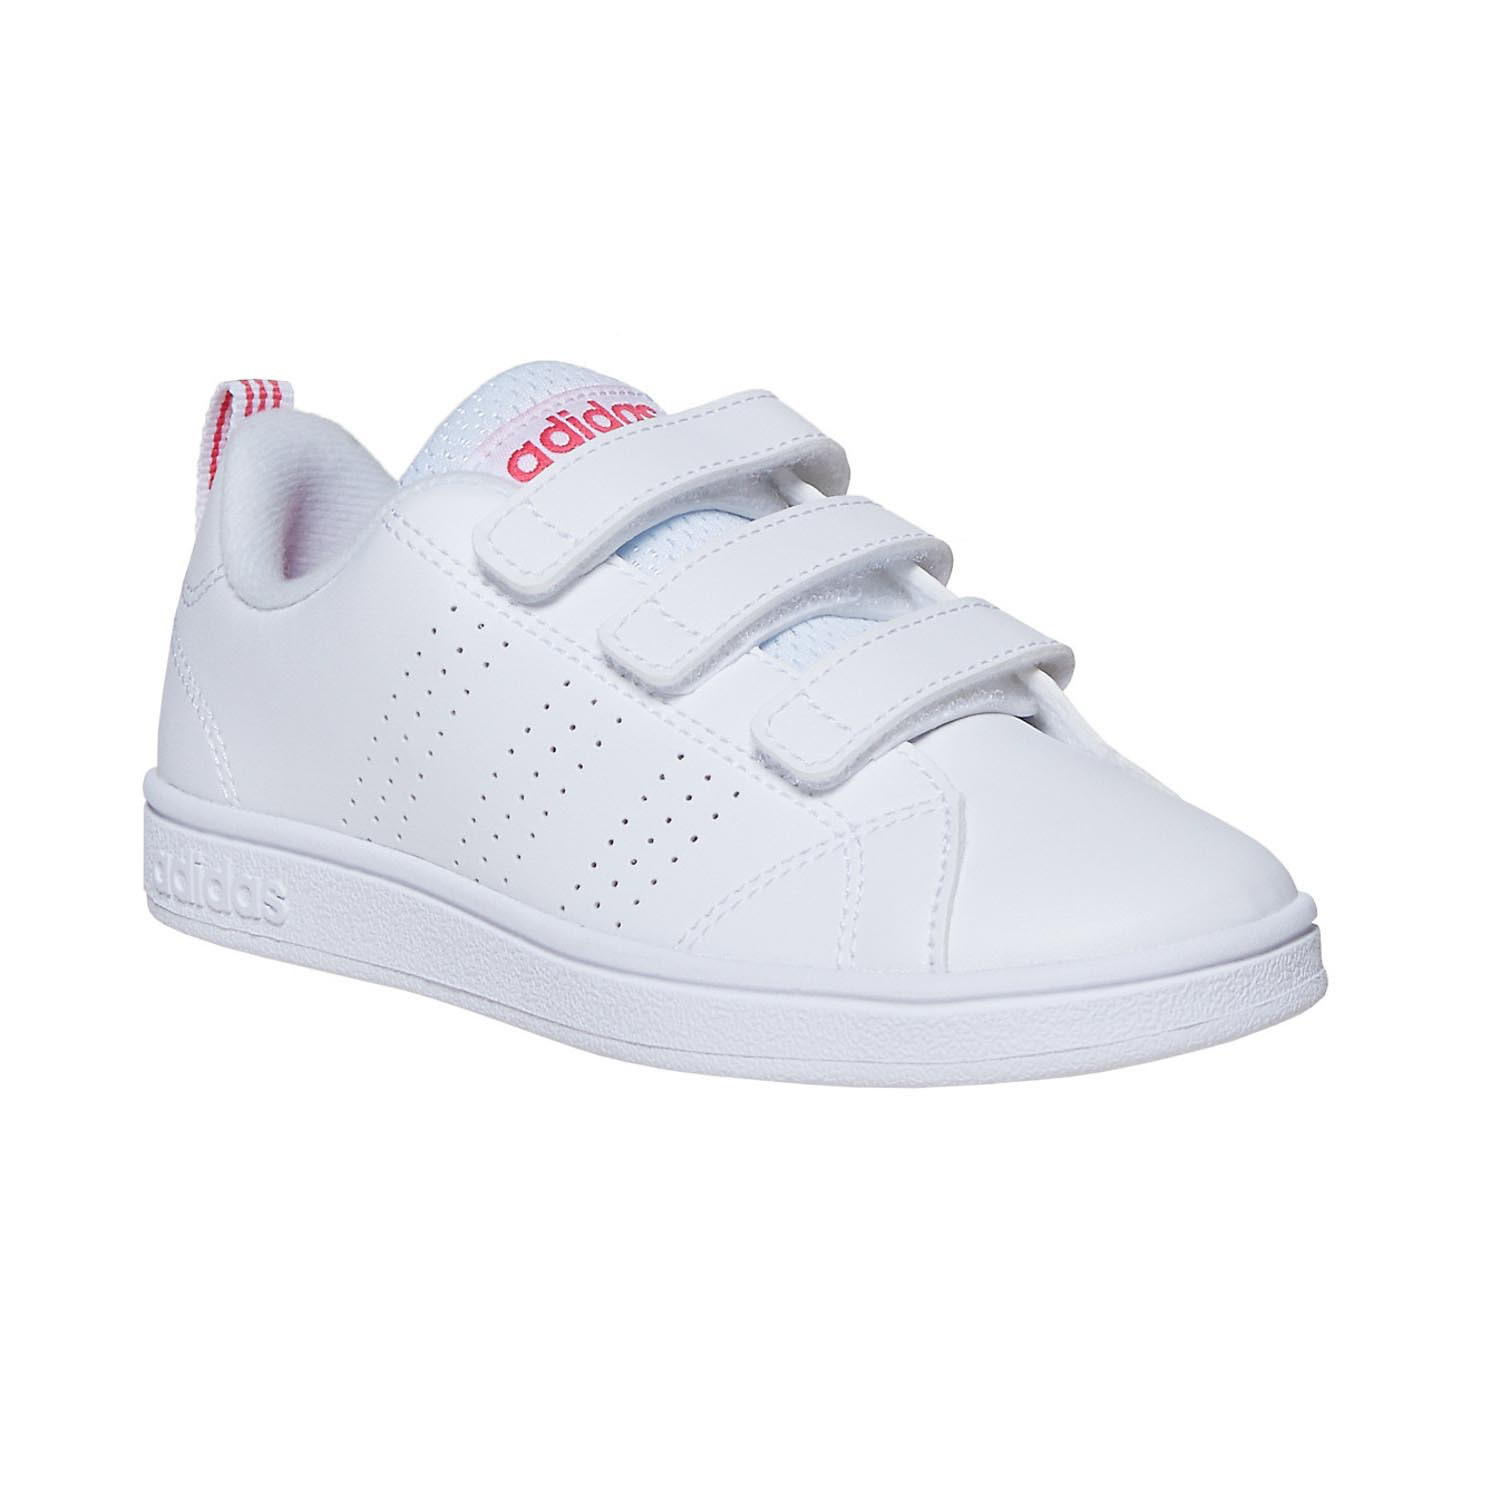 Adidas Girls' sneakers with Velcro | Bata